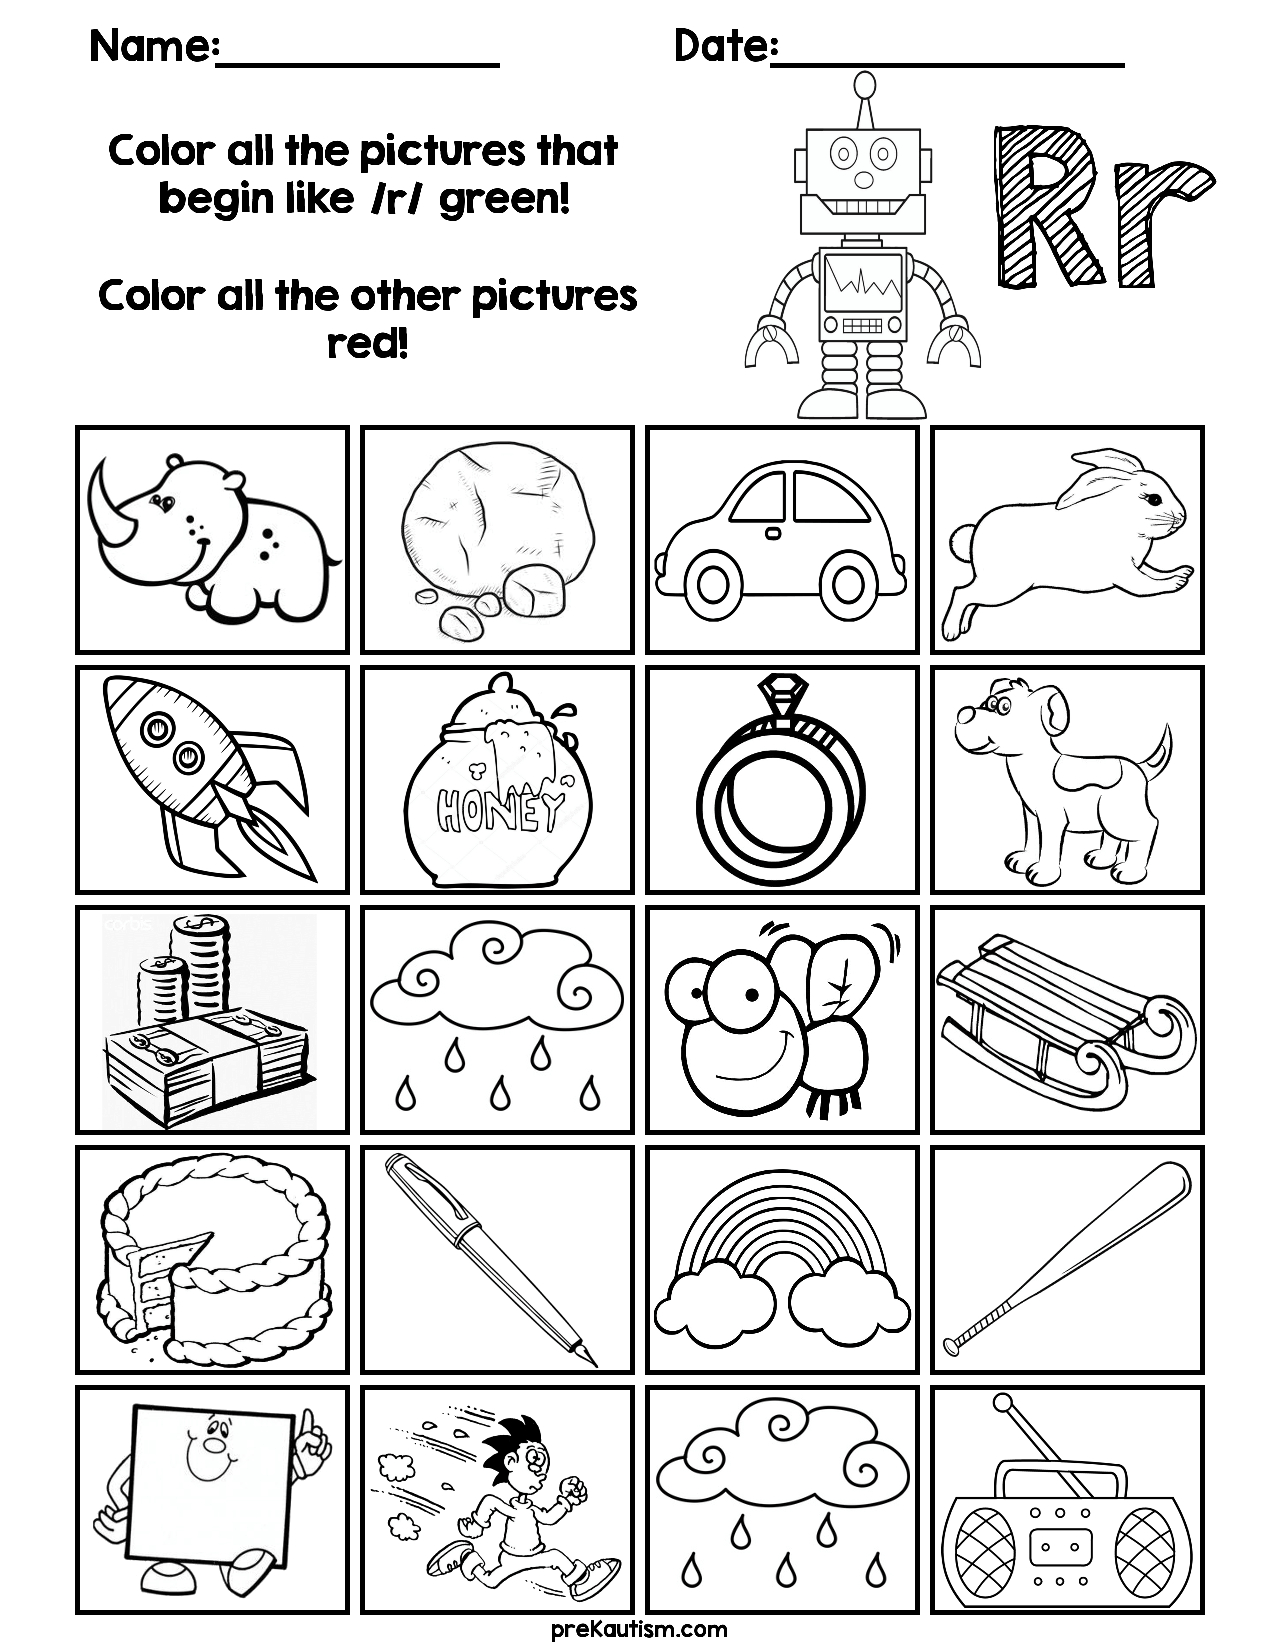 Find & Color Consonants Worksheets | Grade R Worksheets throughout Letter C Worksheets For First Grade